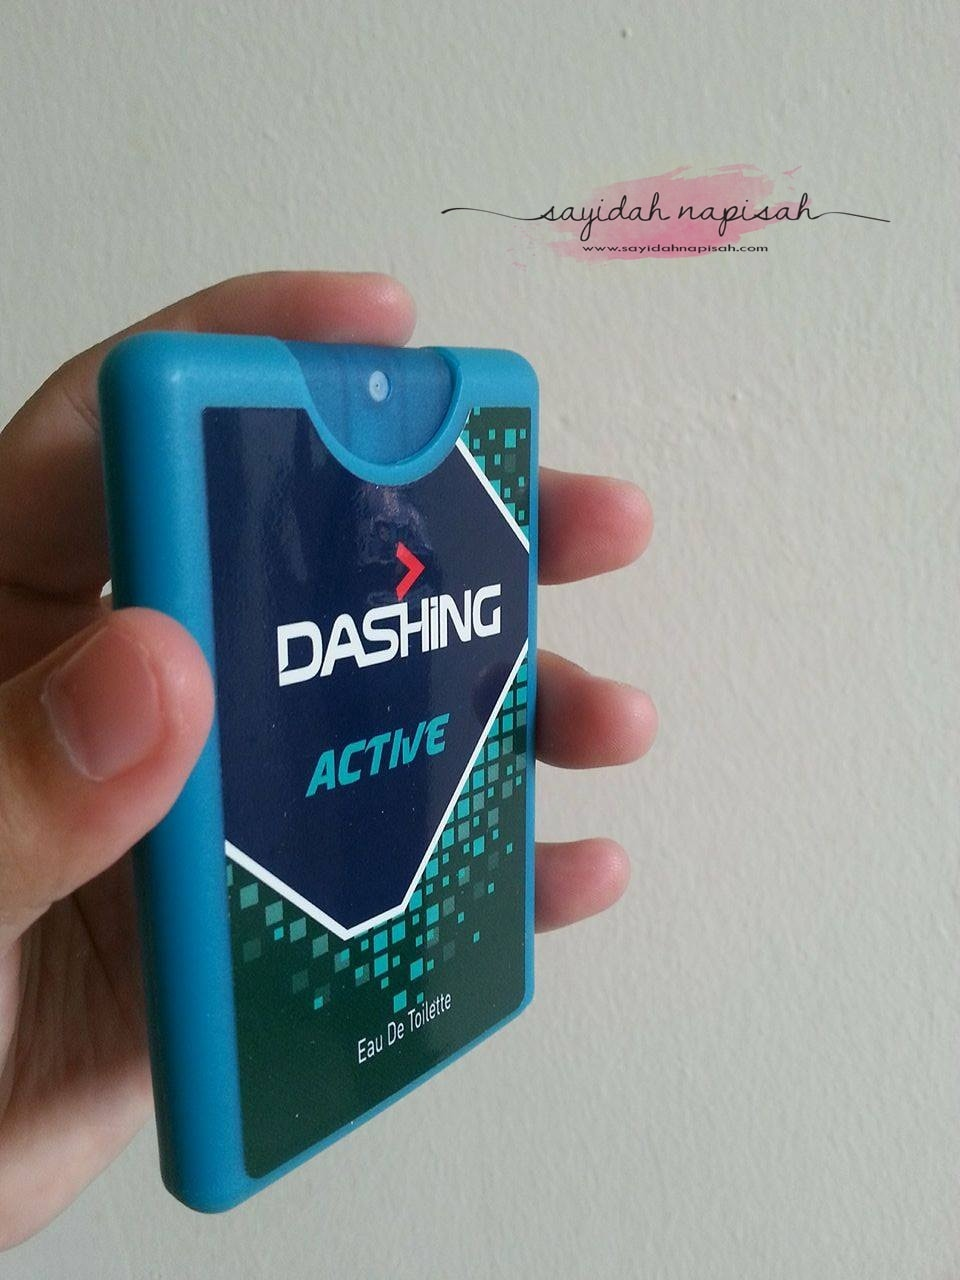 DASHING Anytime EDT | Ekspresi Wangian Maskulin Di Dalam Poket